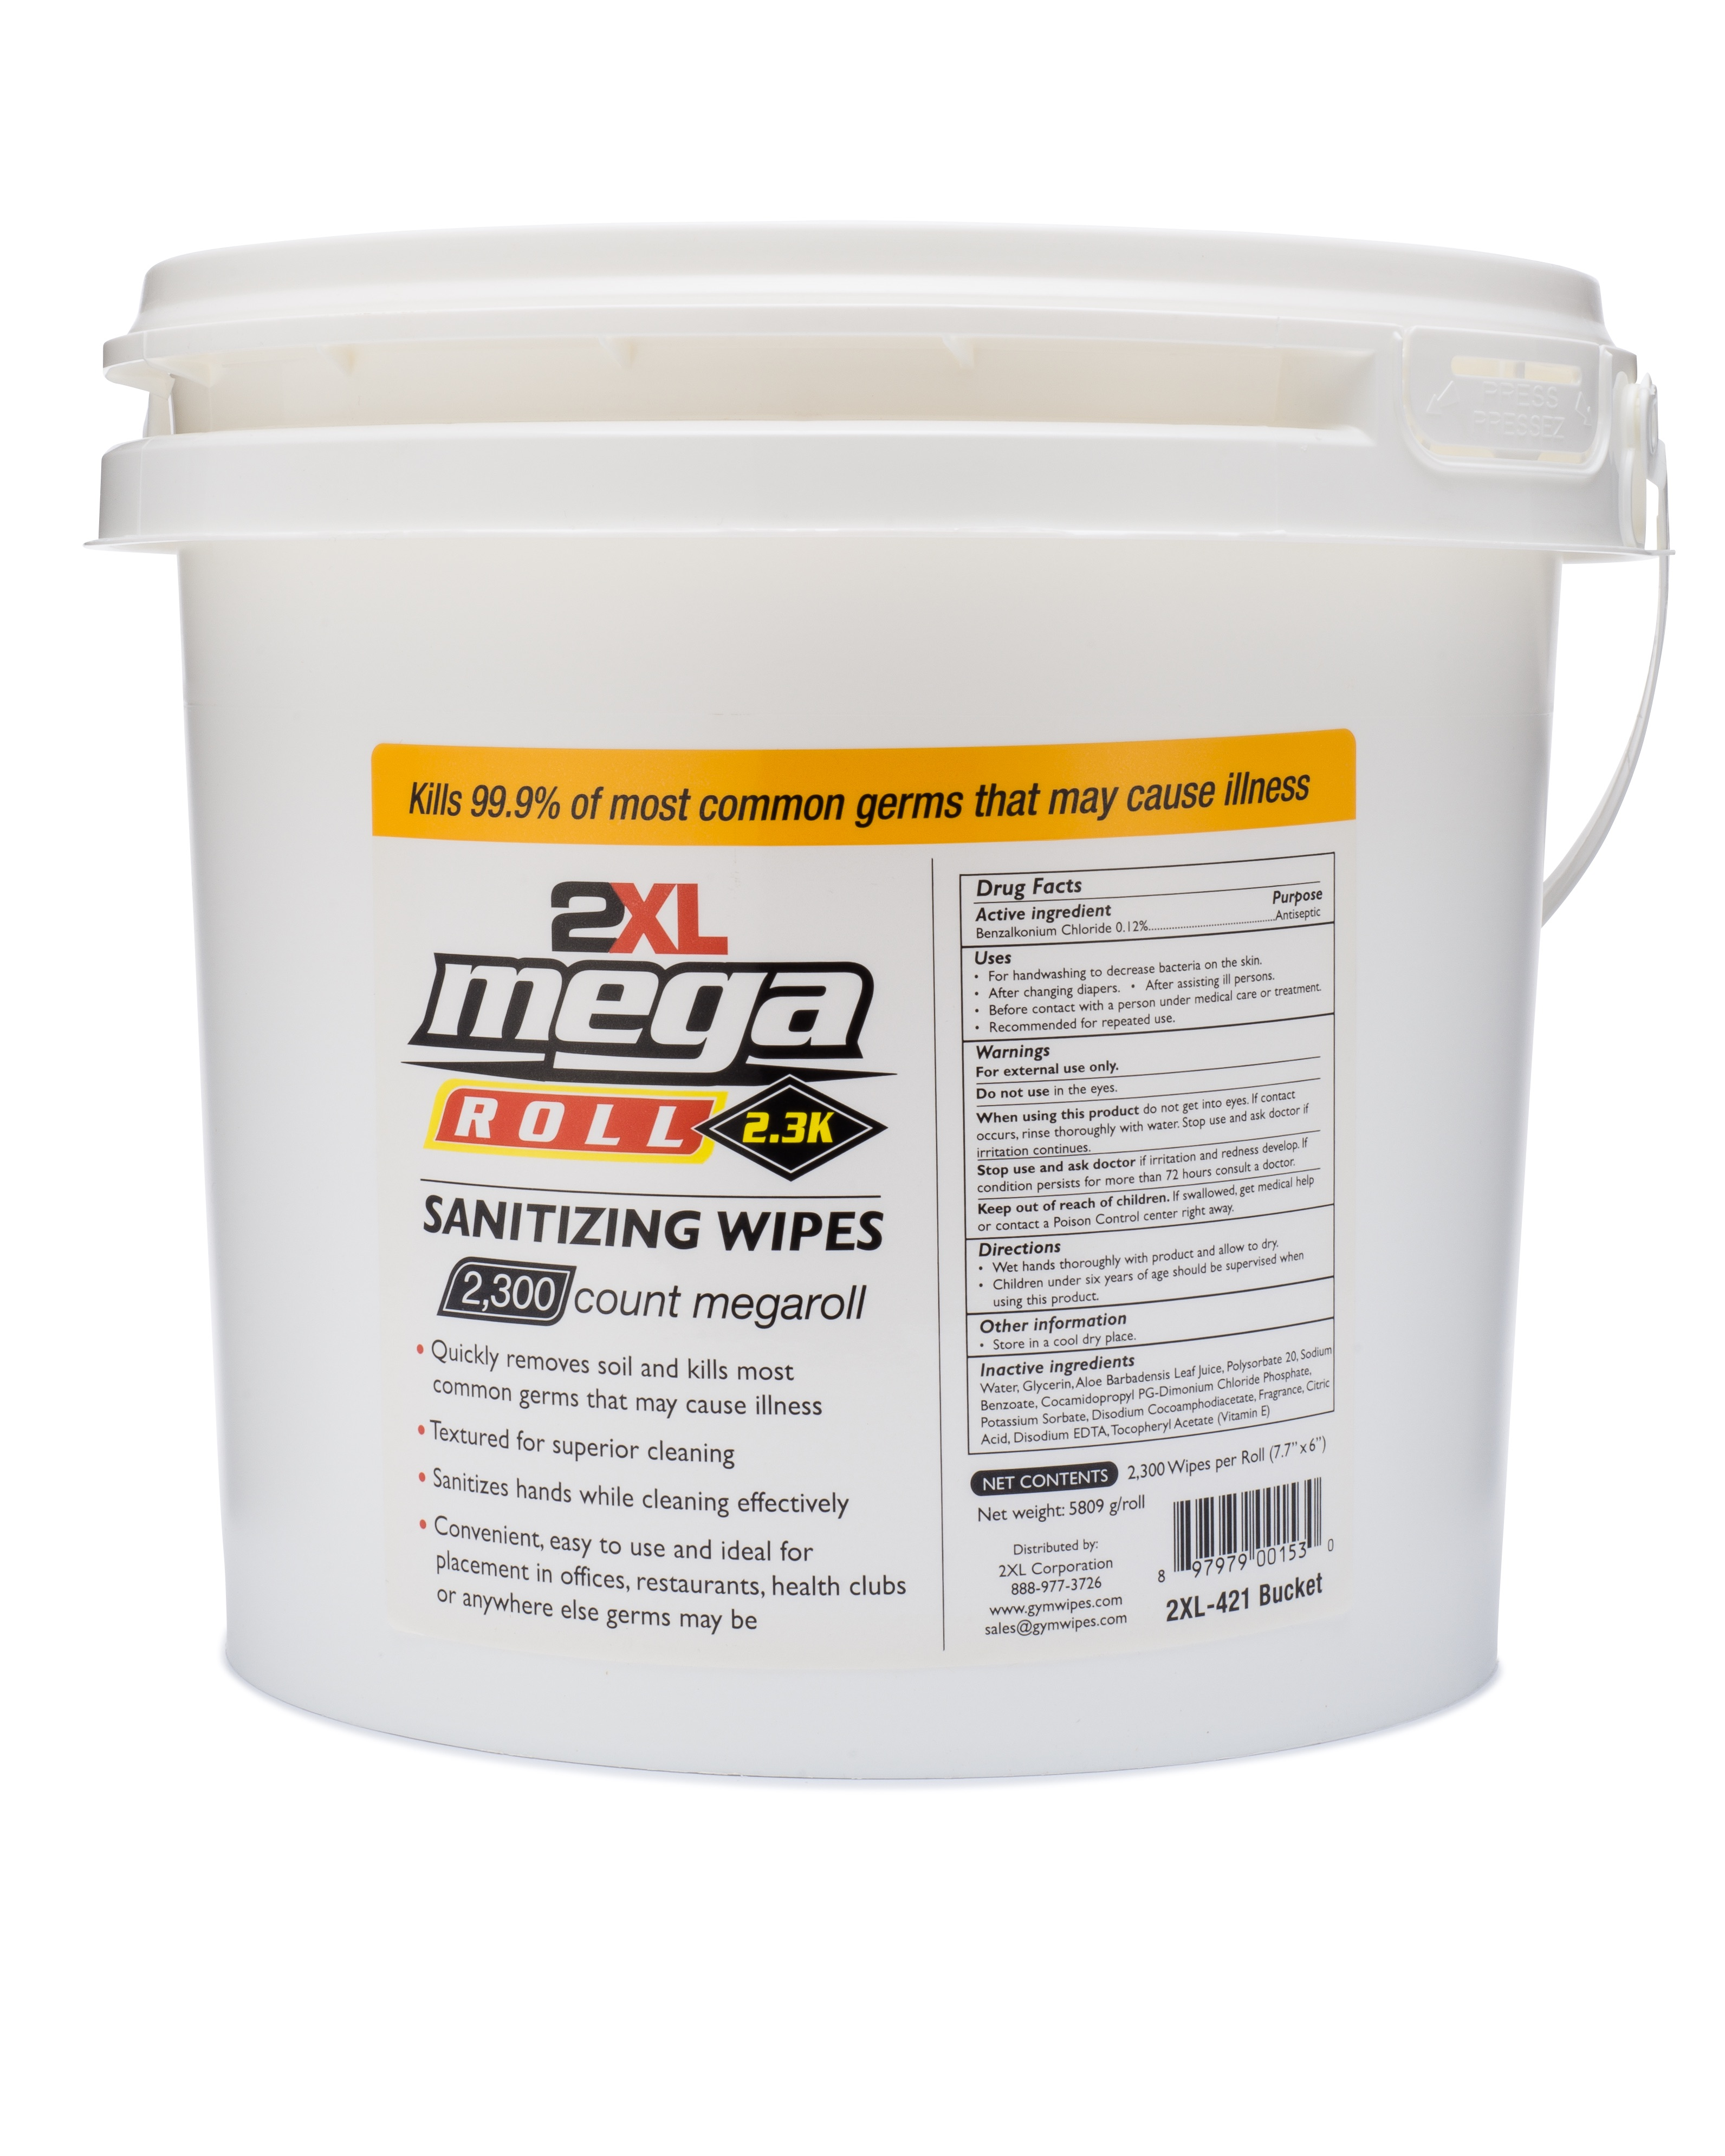 MEGAROLL SANITIZING WIPES